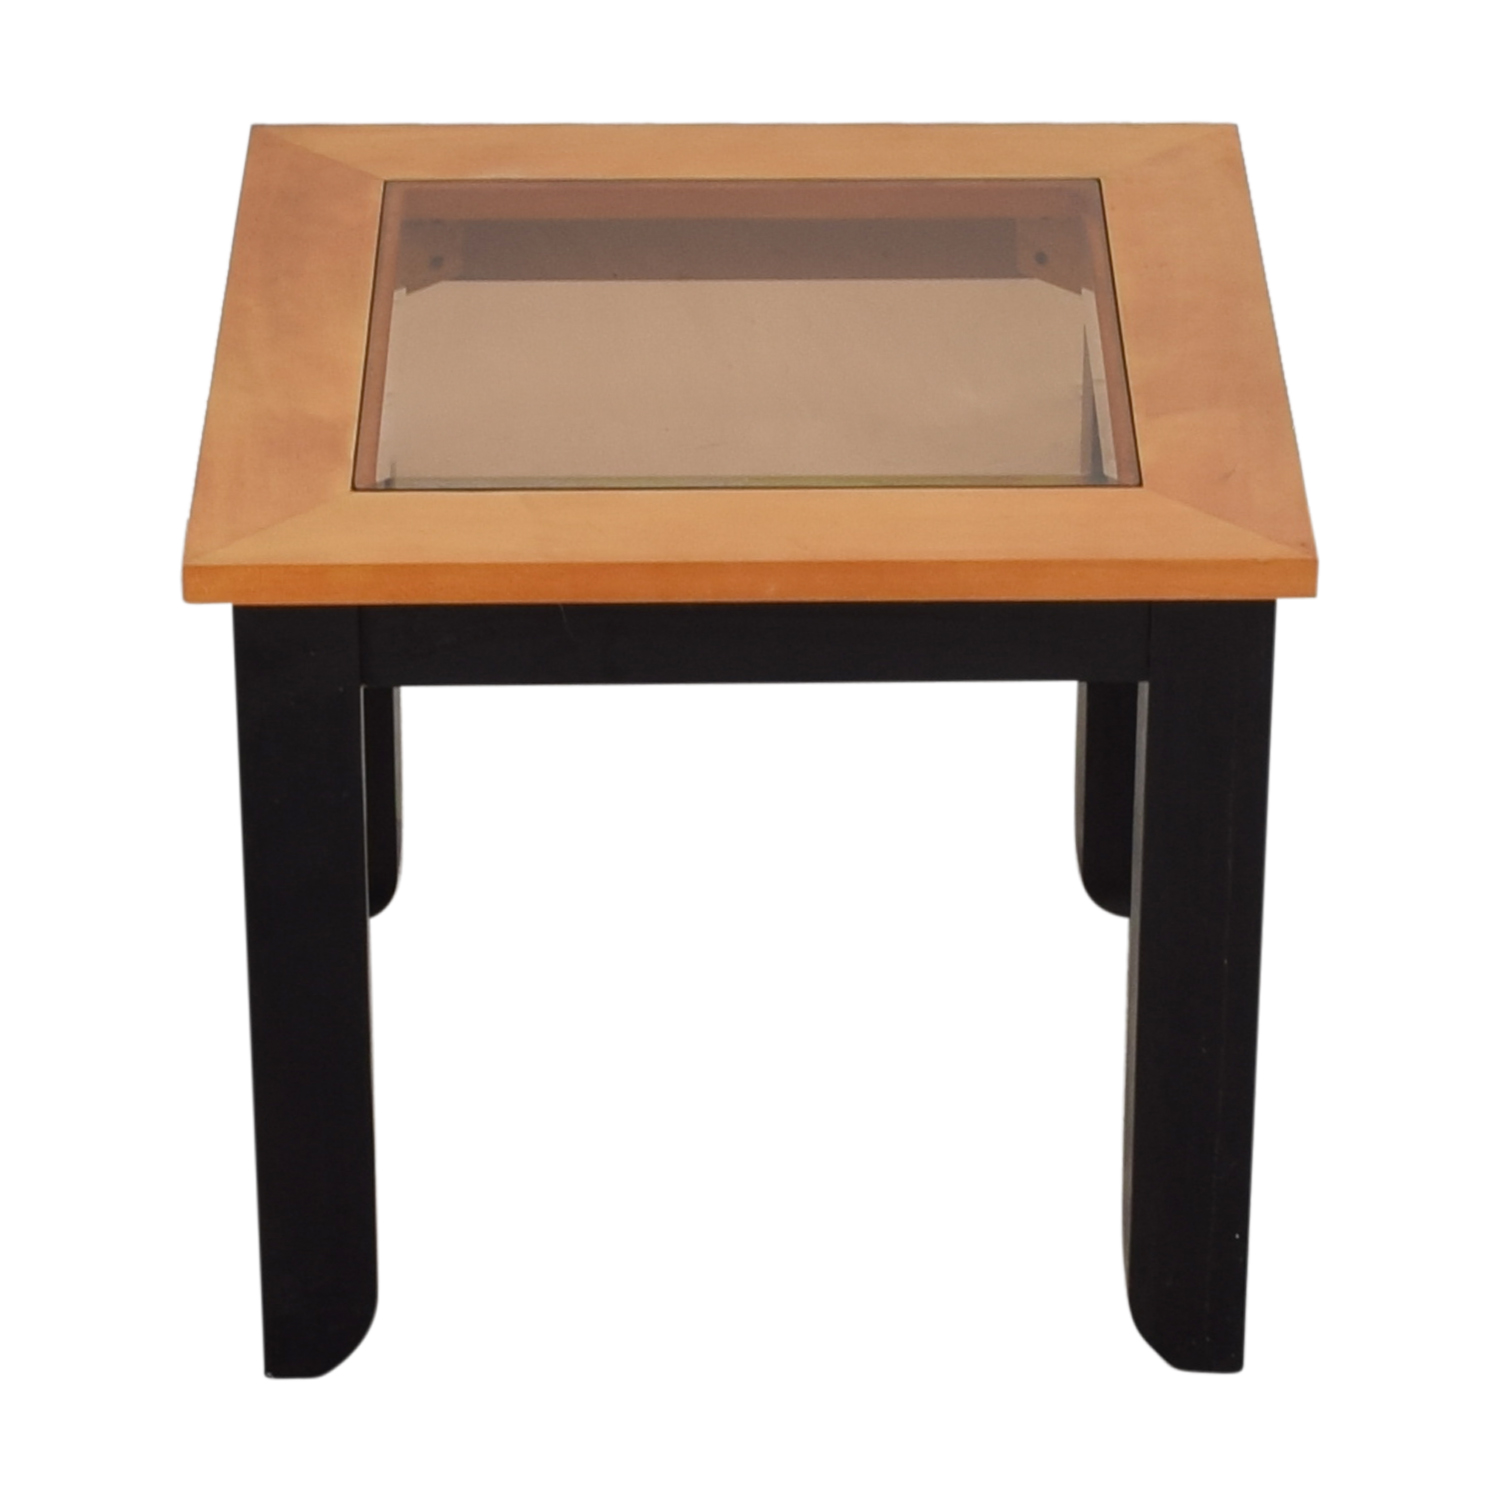 buy Smoke Colored Glass and Wood End Table online